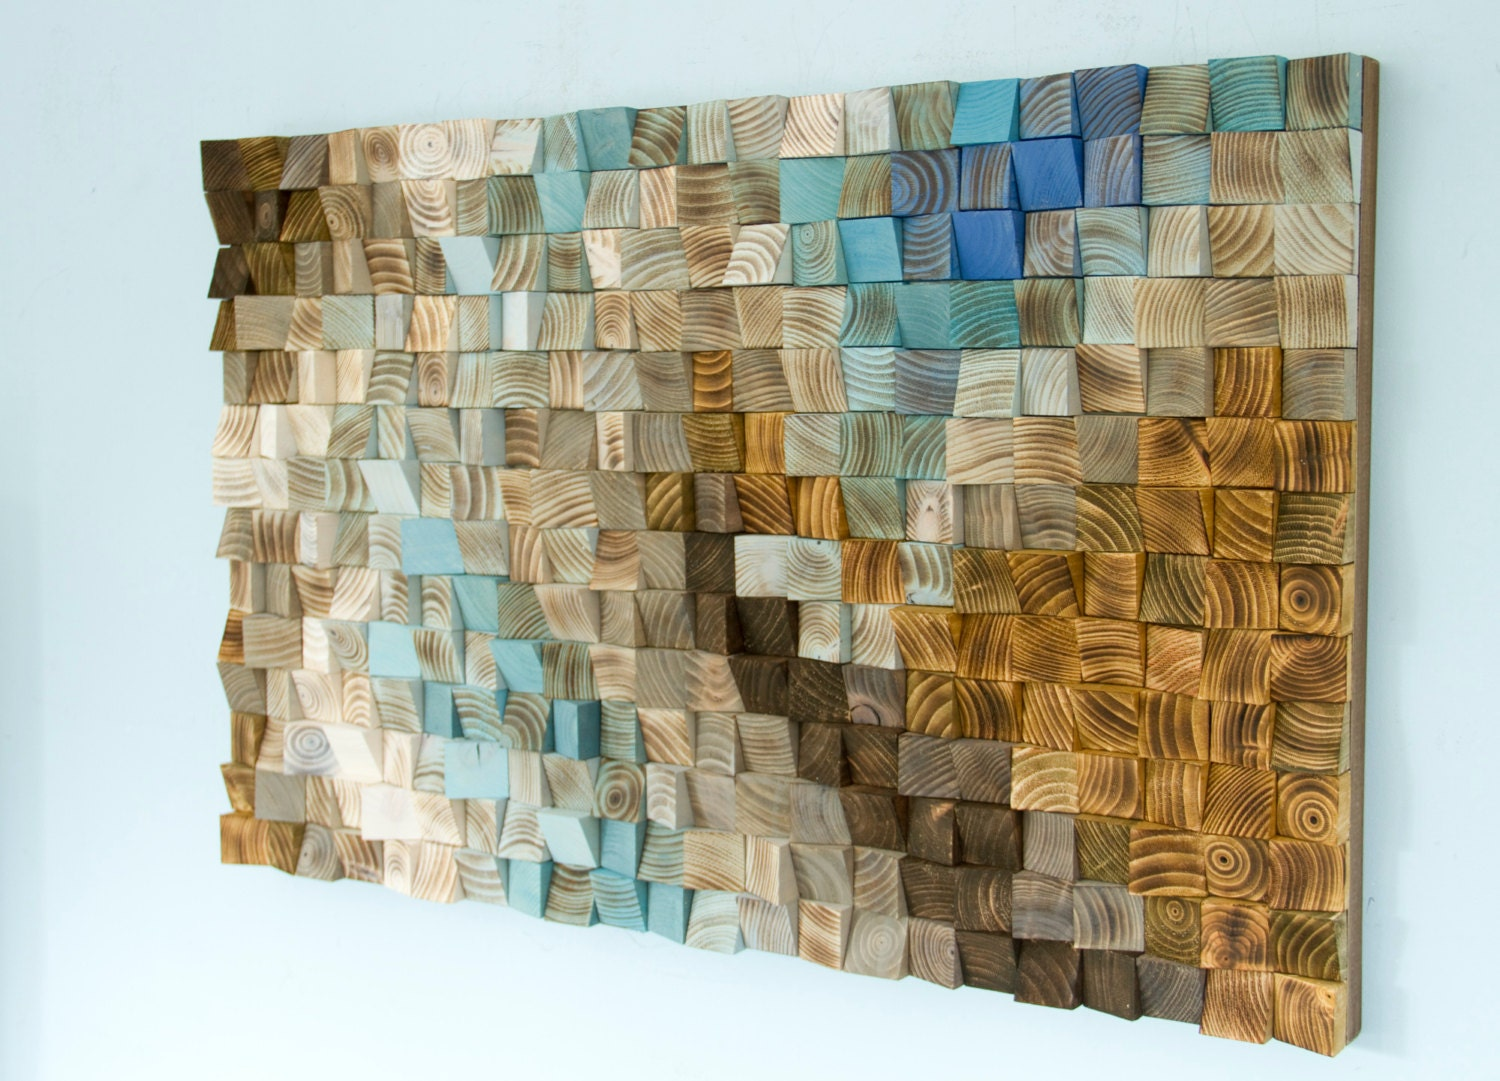 Teal And Brown Wall Art wood wall art mosaic, office wall decor, geometric art, 24 x 36